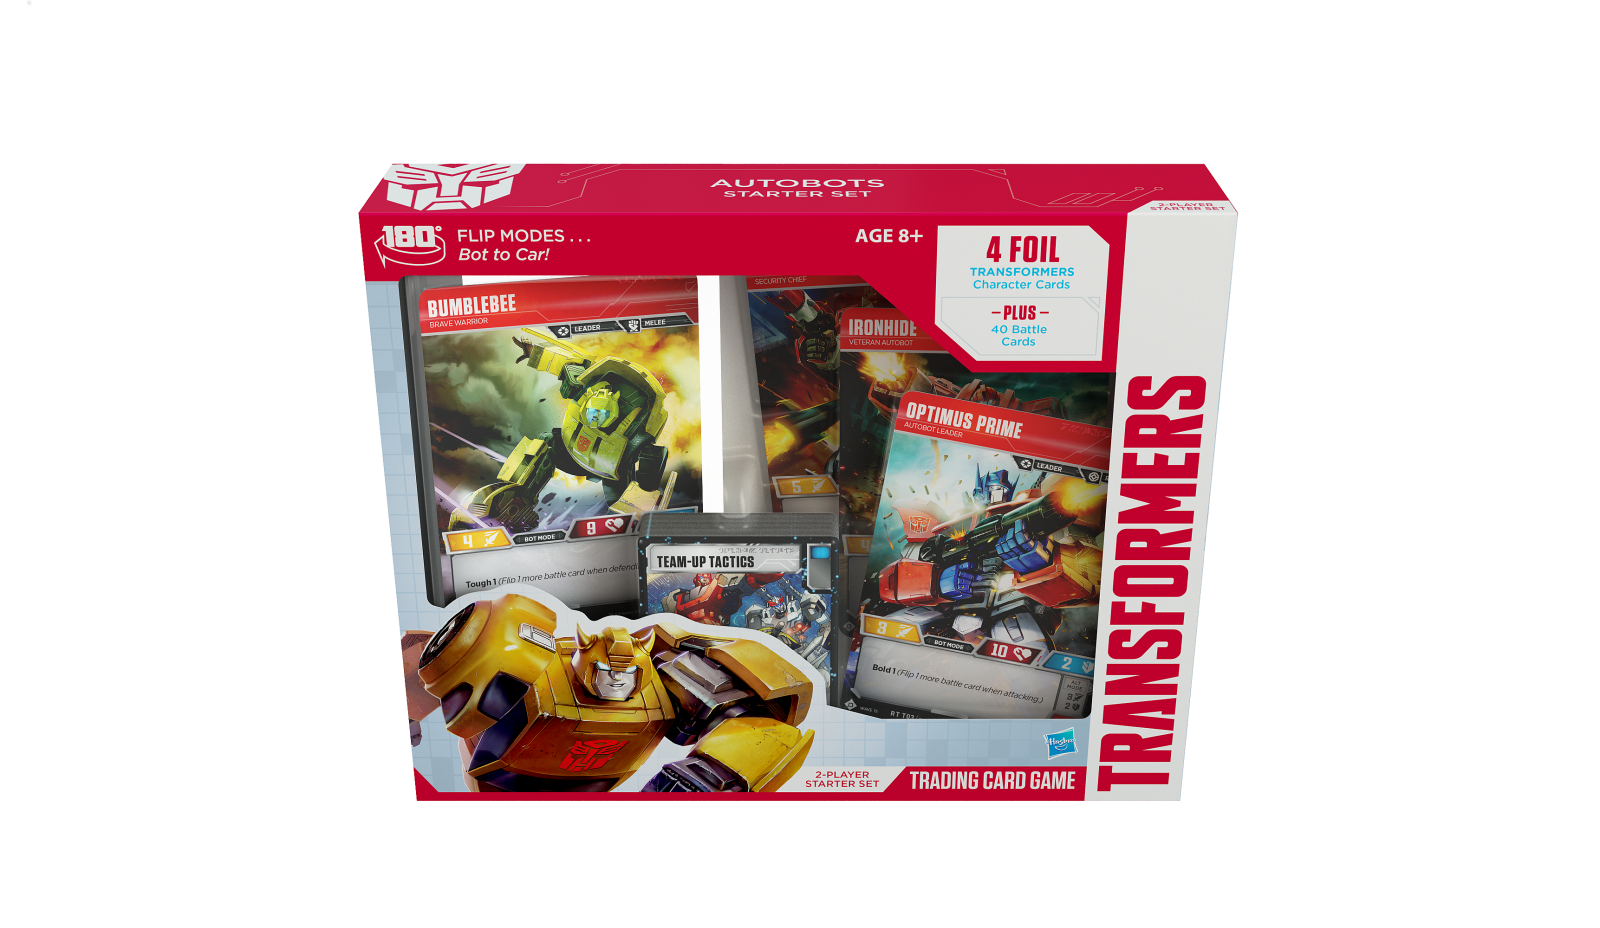 Transformers News: Hasbro Transformers Trading Card Game Convention Edition at #SDCC2018 #HasbroSDCC